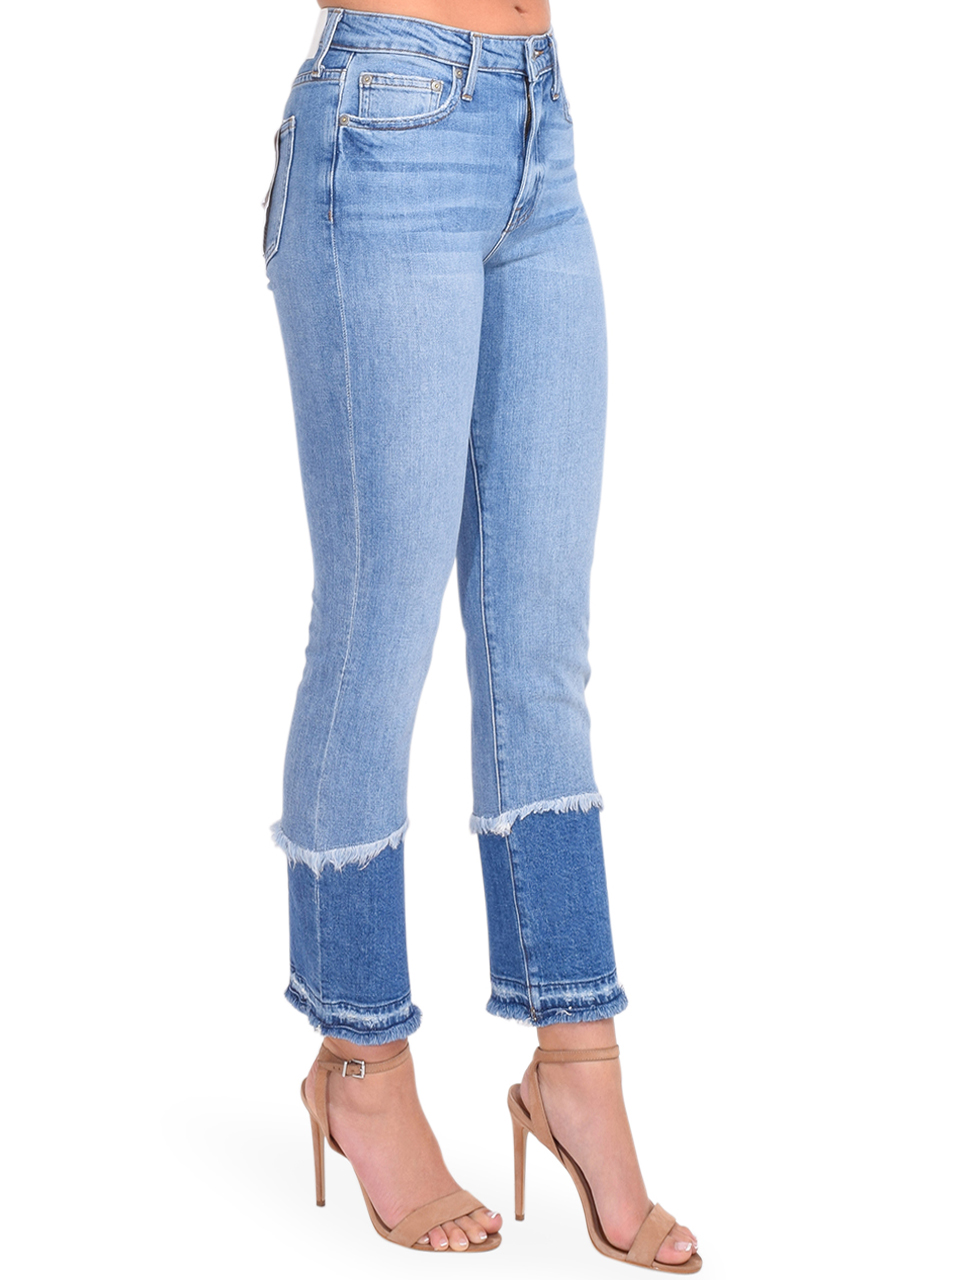 River Straight Leg Jean in Cayucas Light Wash Side View